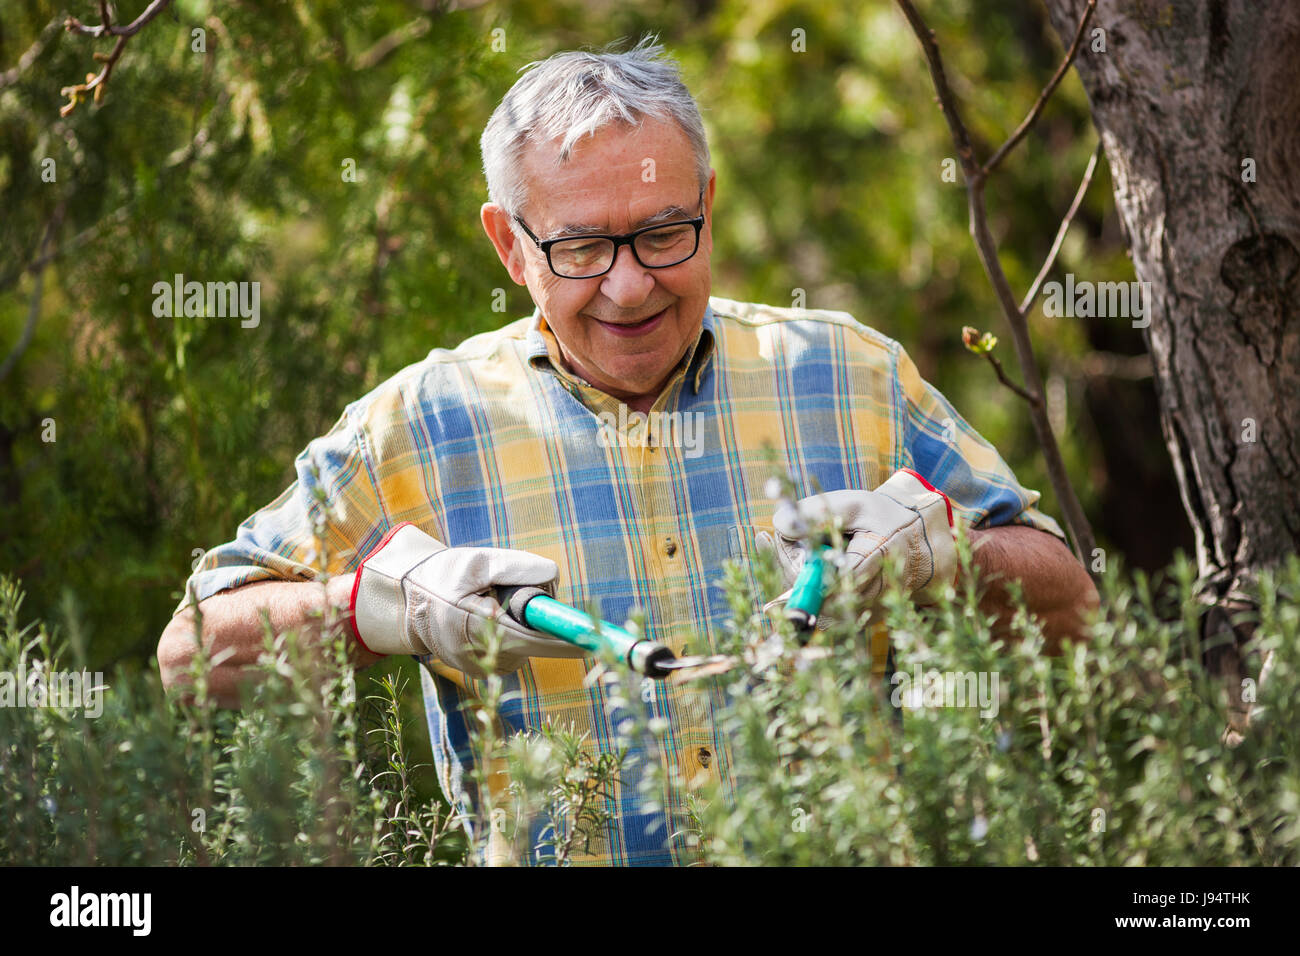 Senior man in his garden. He is pruning plants. - Stock Image